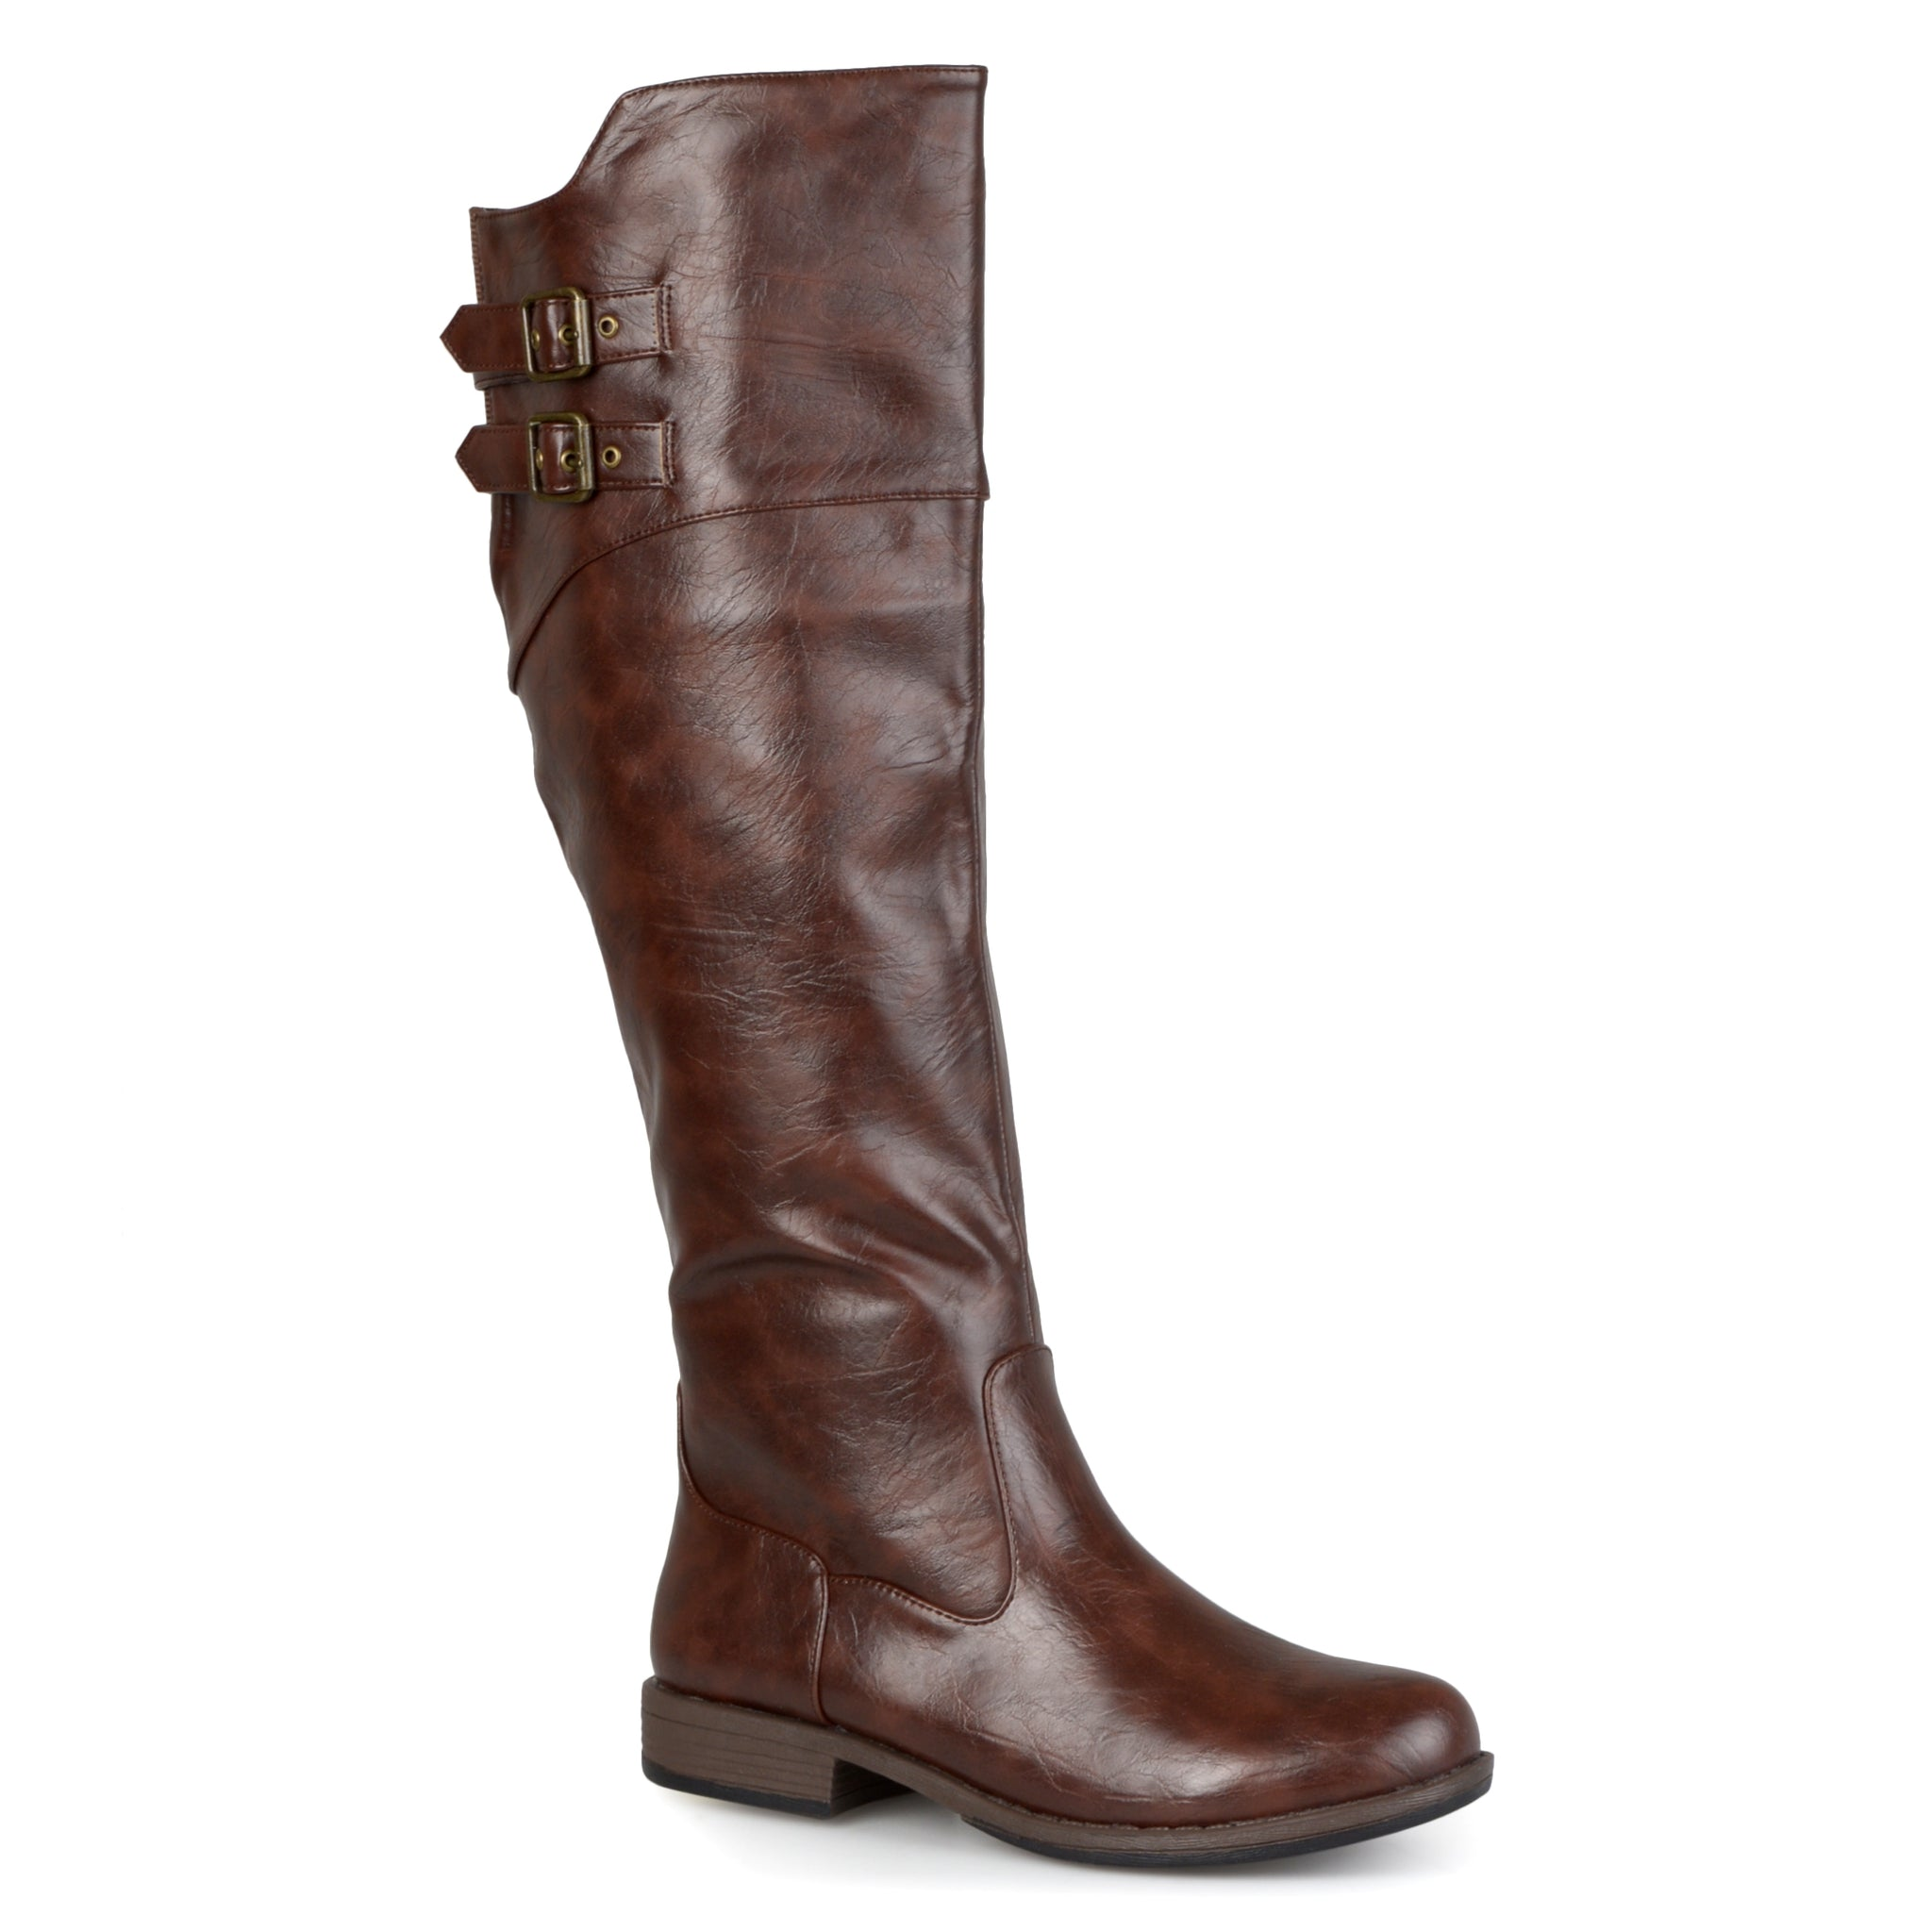 Double-Buckle Knee-High Riding Boot